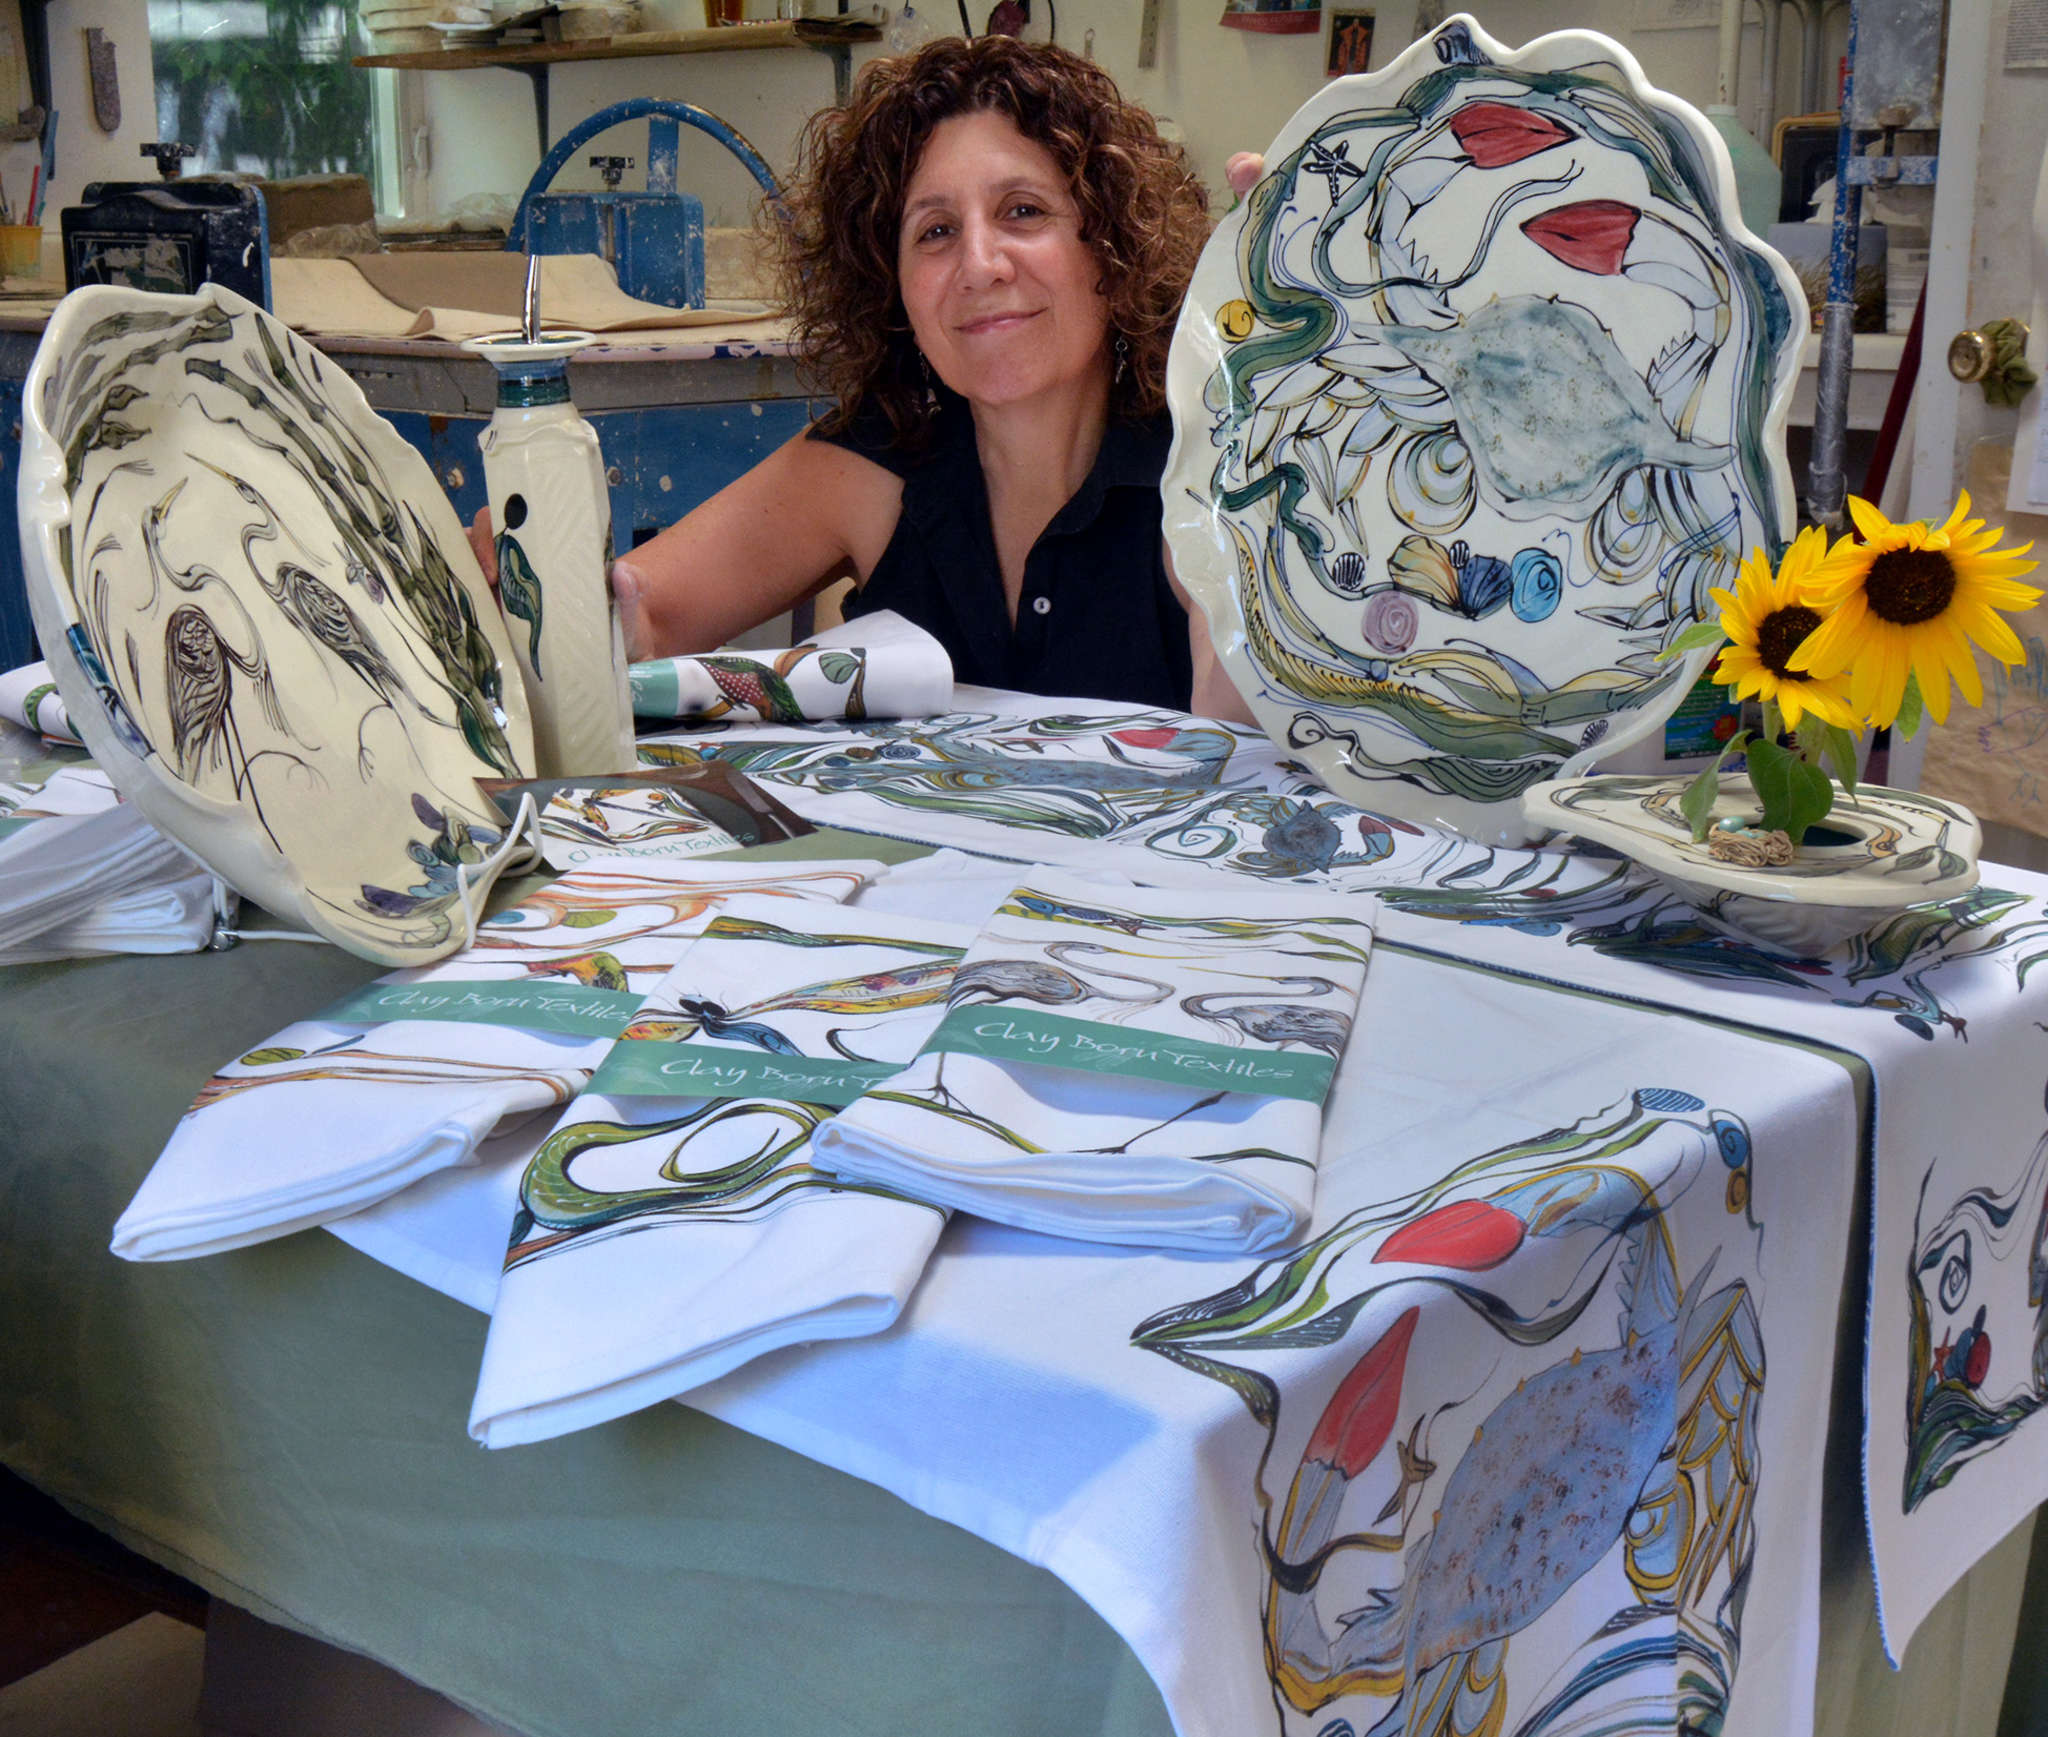 Artist Nancy Salamon at her Clay Born studio in West Chester with some of her hand-painted ceramics and the new line of coordinating textiles digitally printed with her designs.